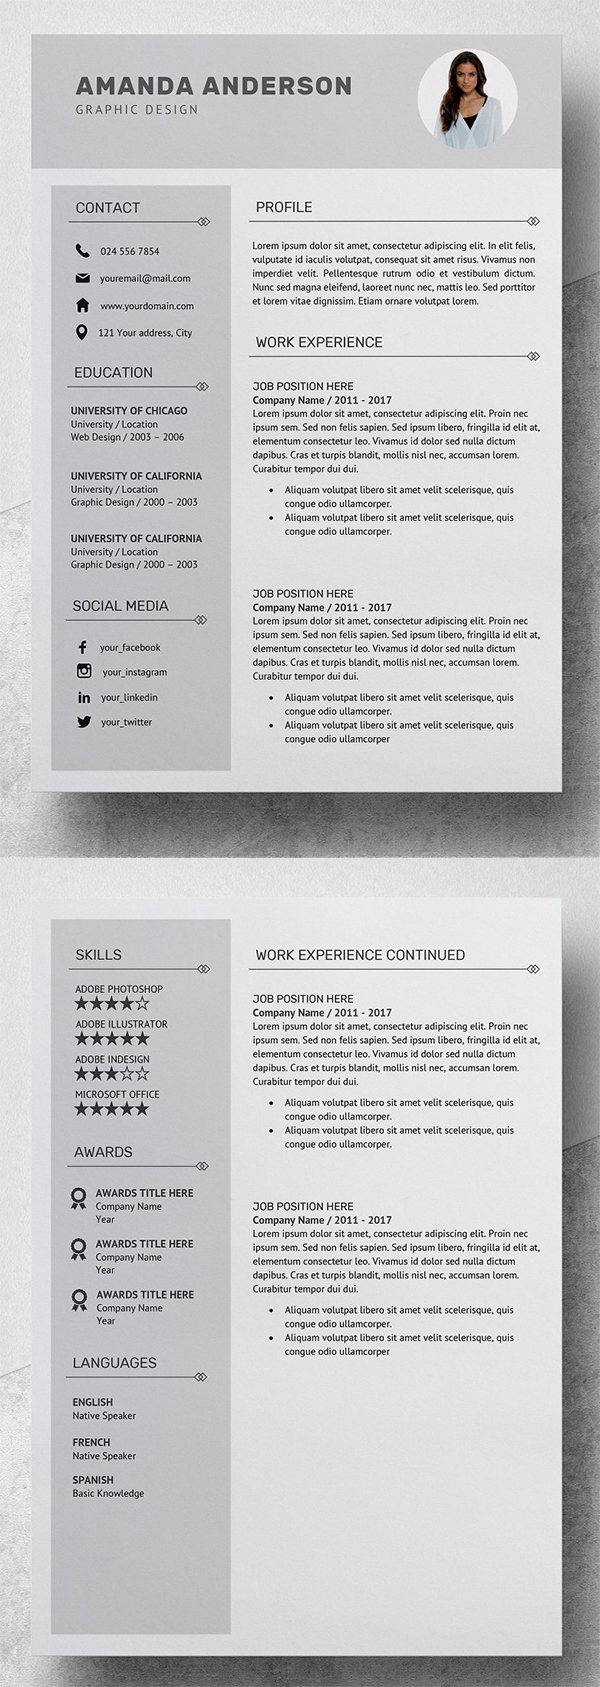 Simple Resume | CV Template + Cover Letter